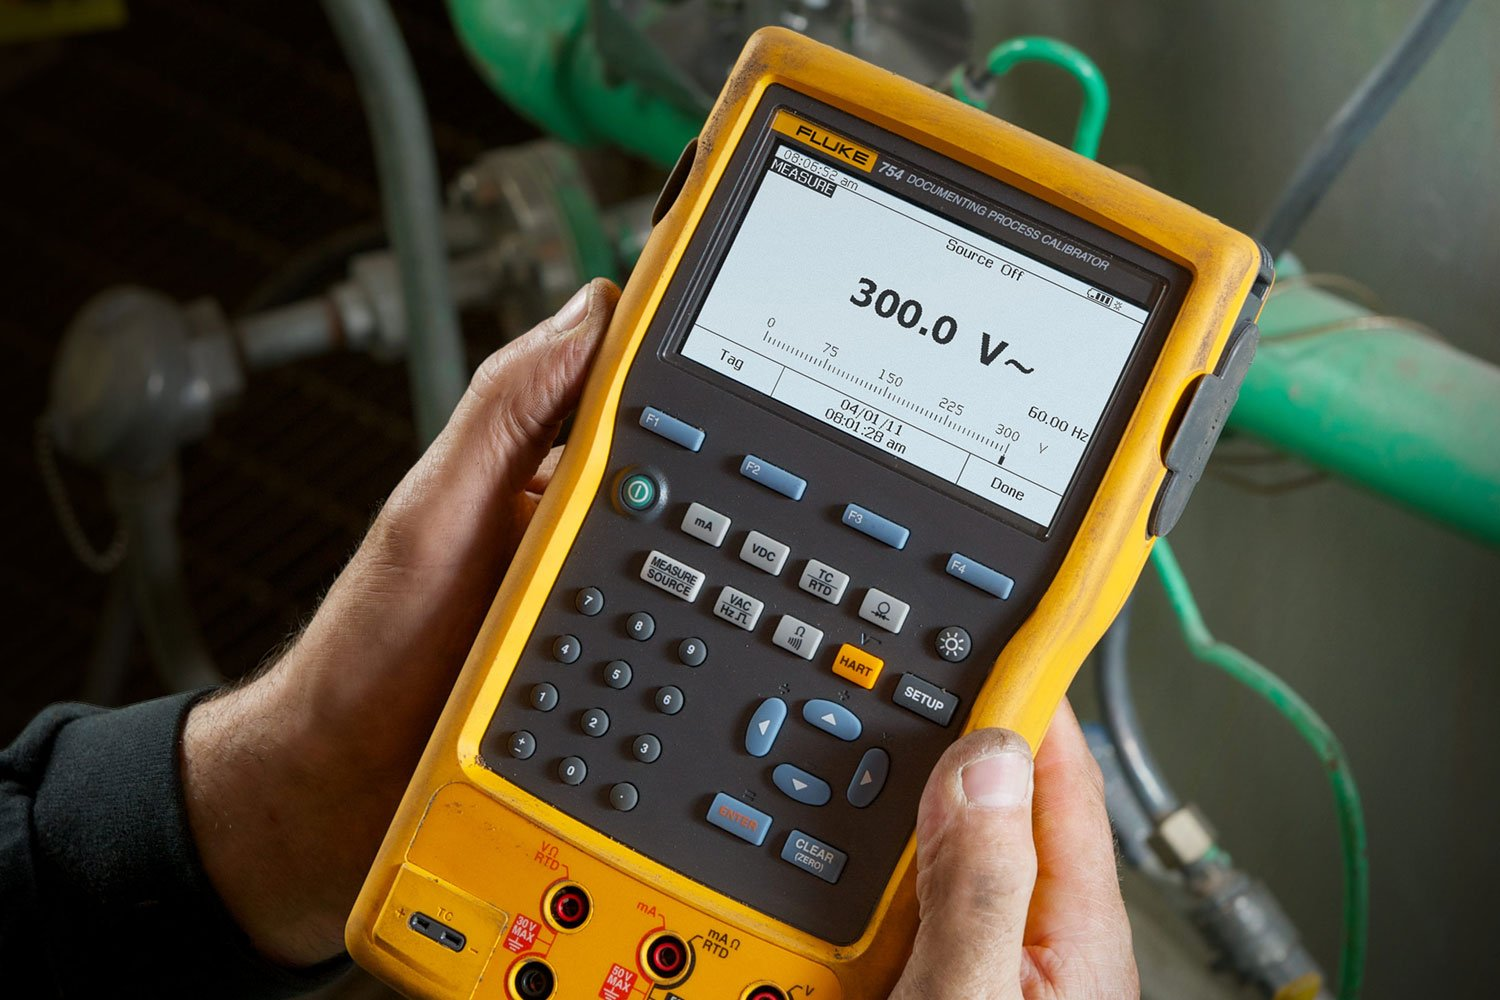 Fluke 754 Documenting Process Calibrator With Hart Communication Dvc Sub Wiring Diagram